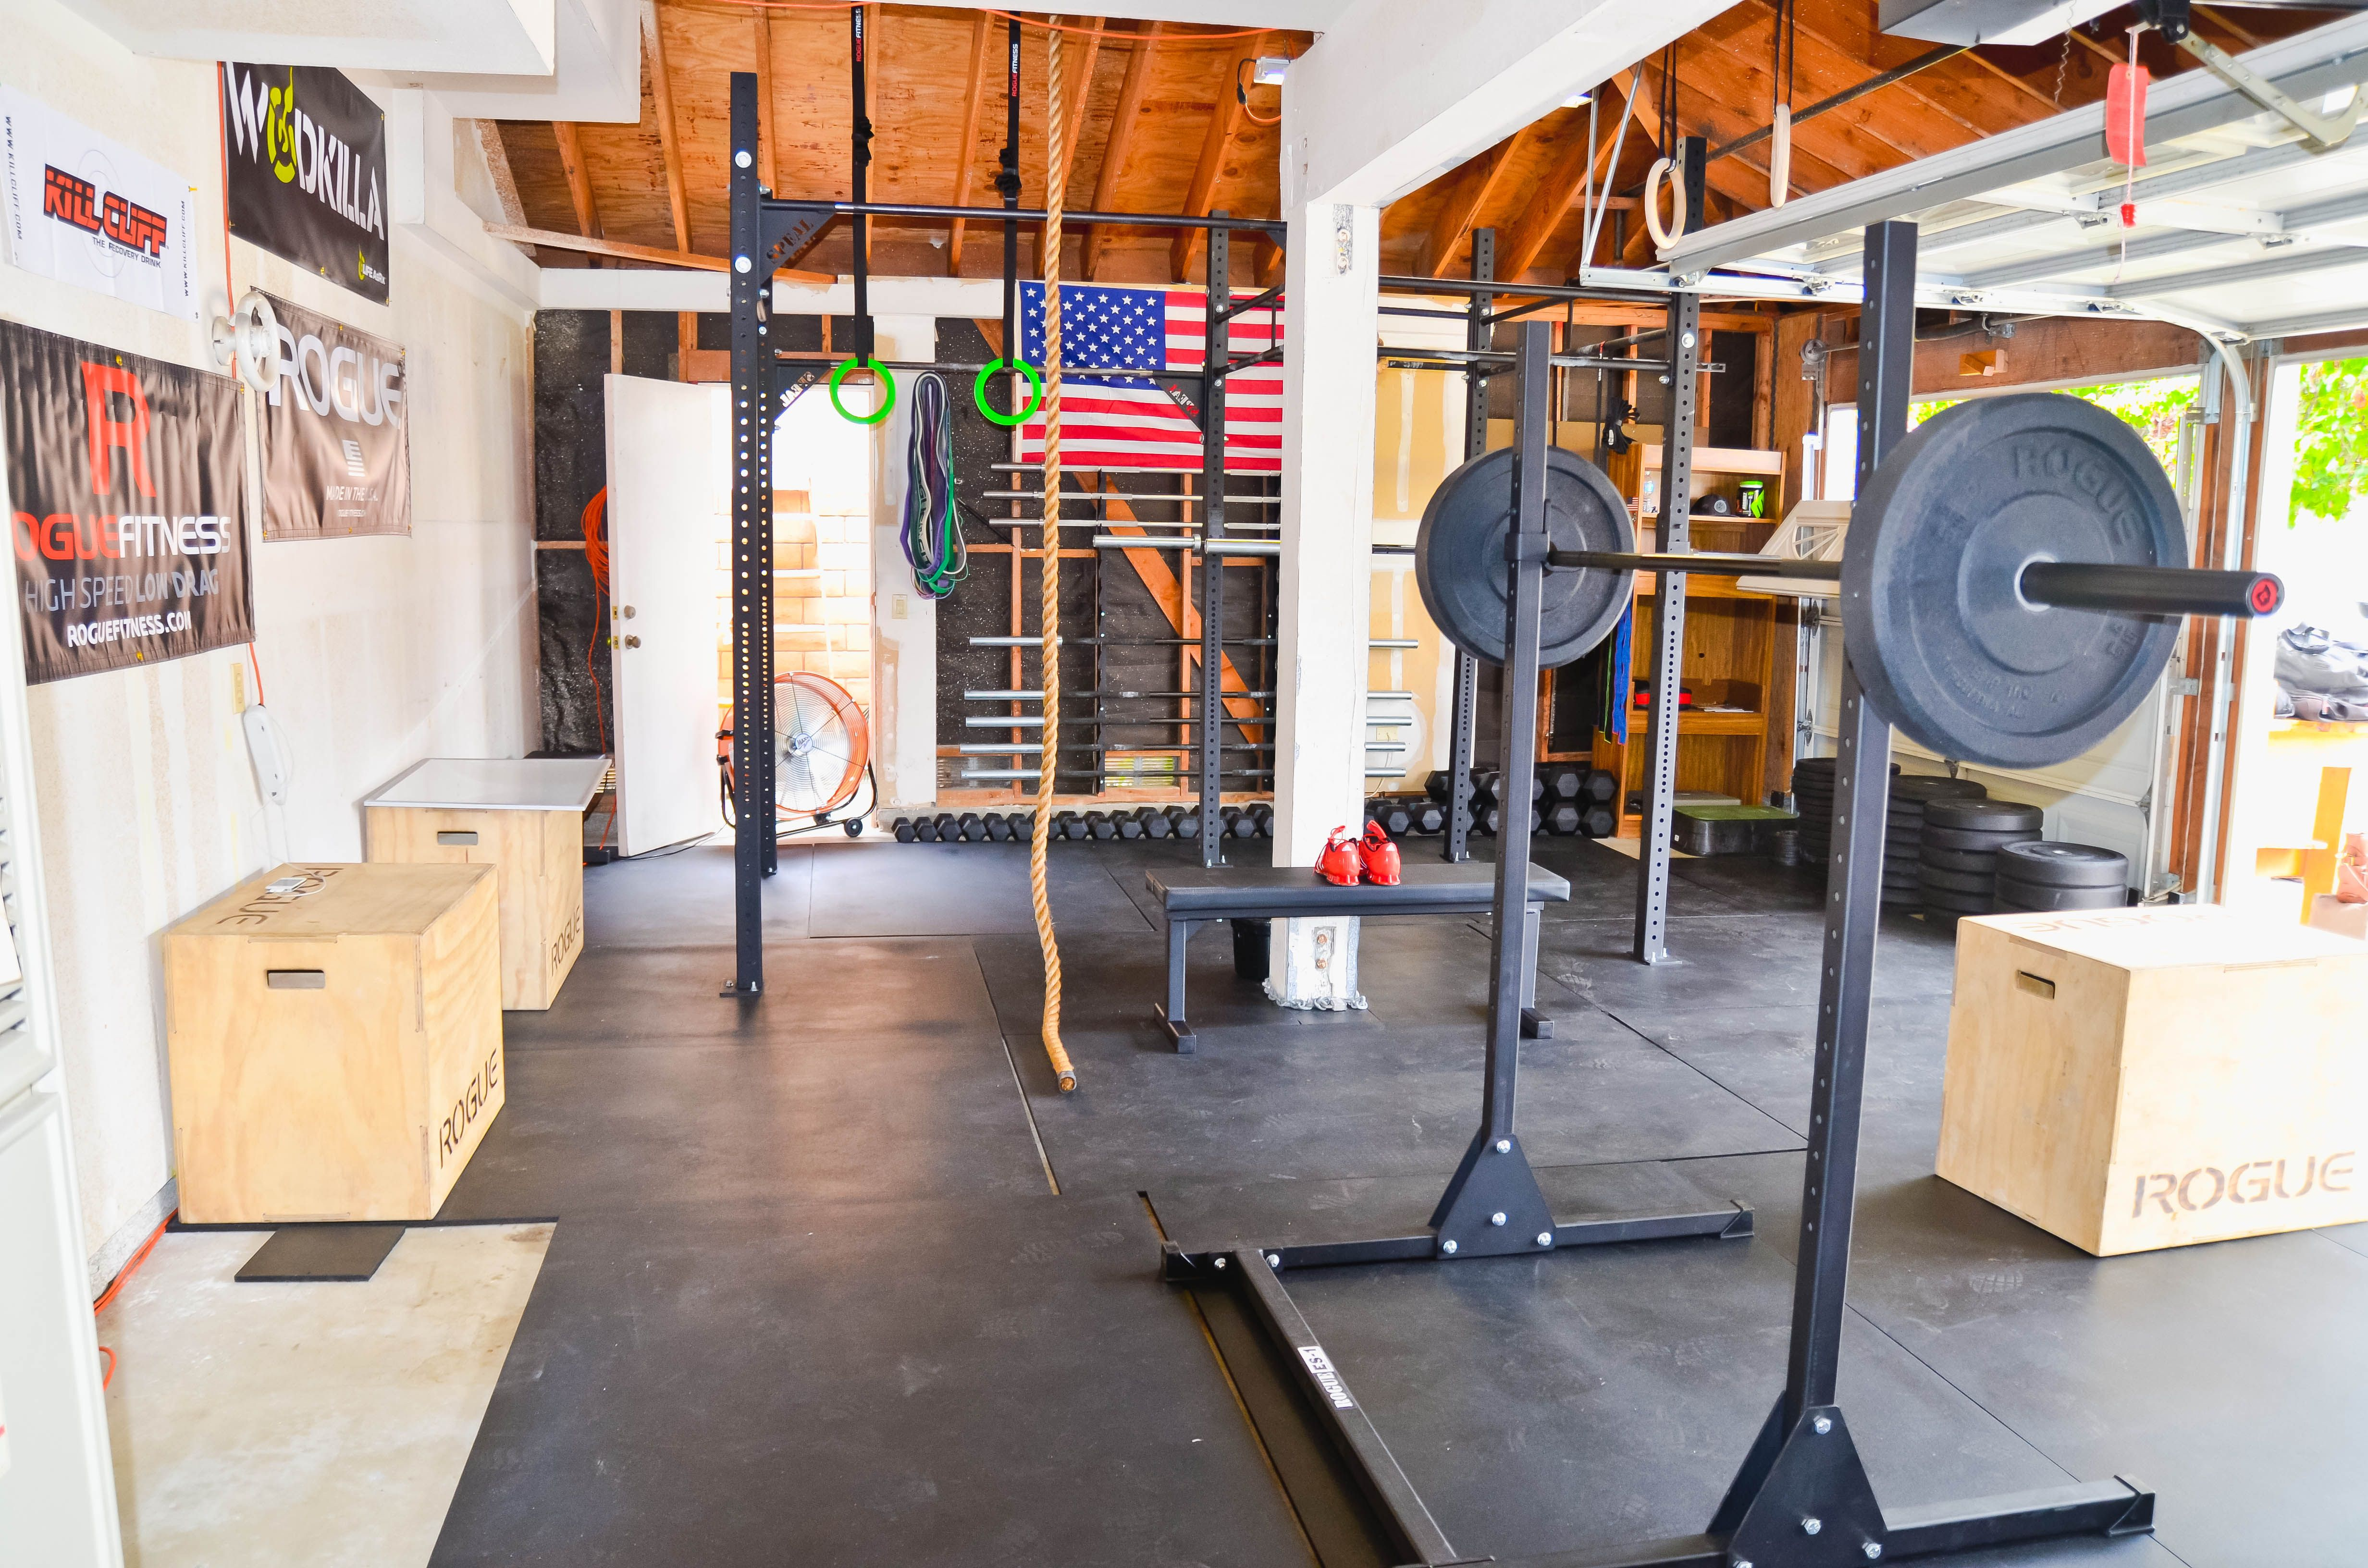 Garage Gym Storage Ideas Garage Gyms Rogue Equipped Gyms Home Gyms Pinterest